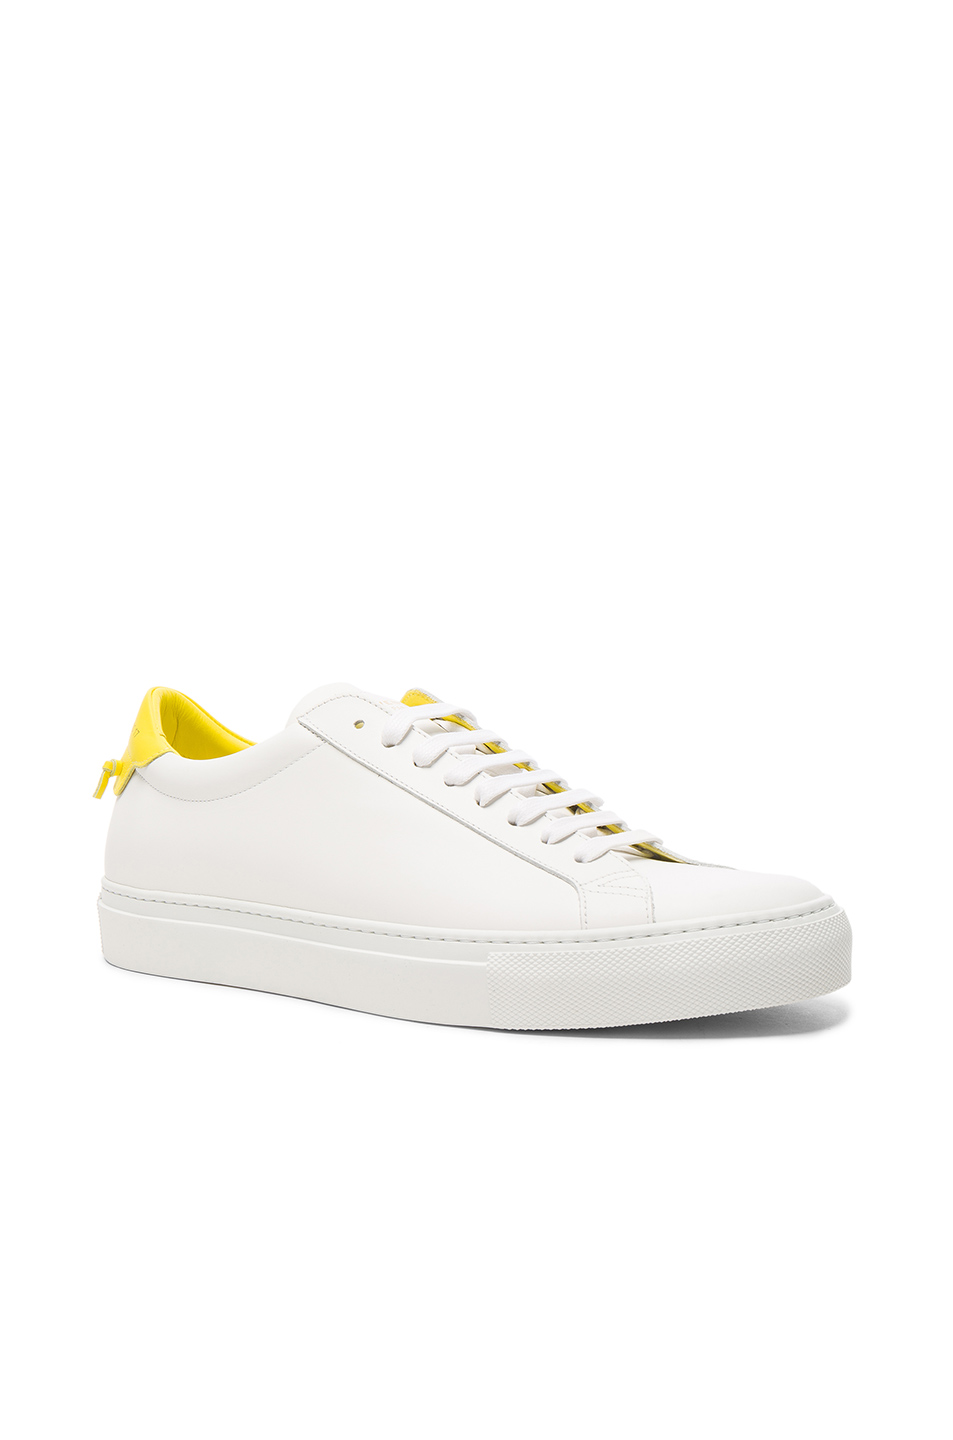 Givenchy Urban Street Low Top Leather Sneakers in White